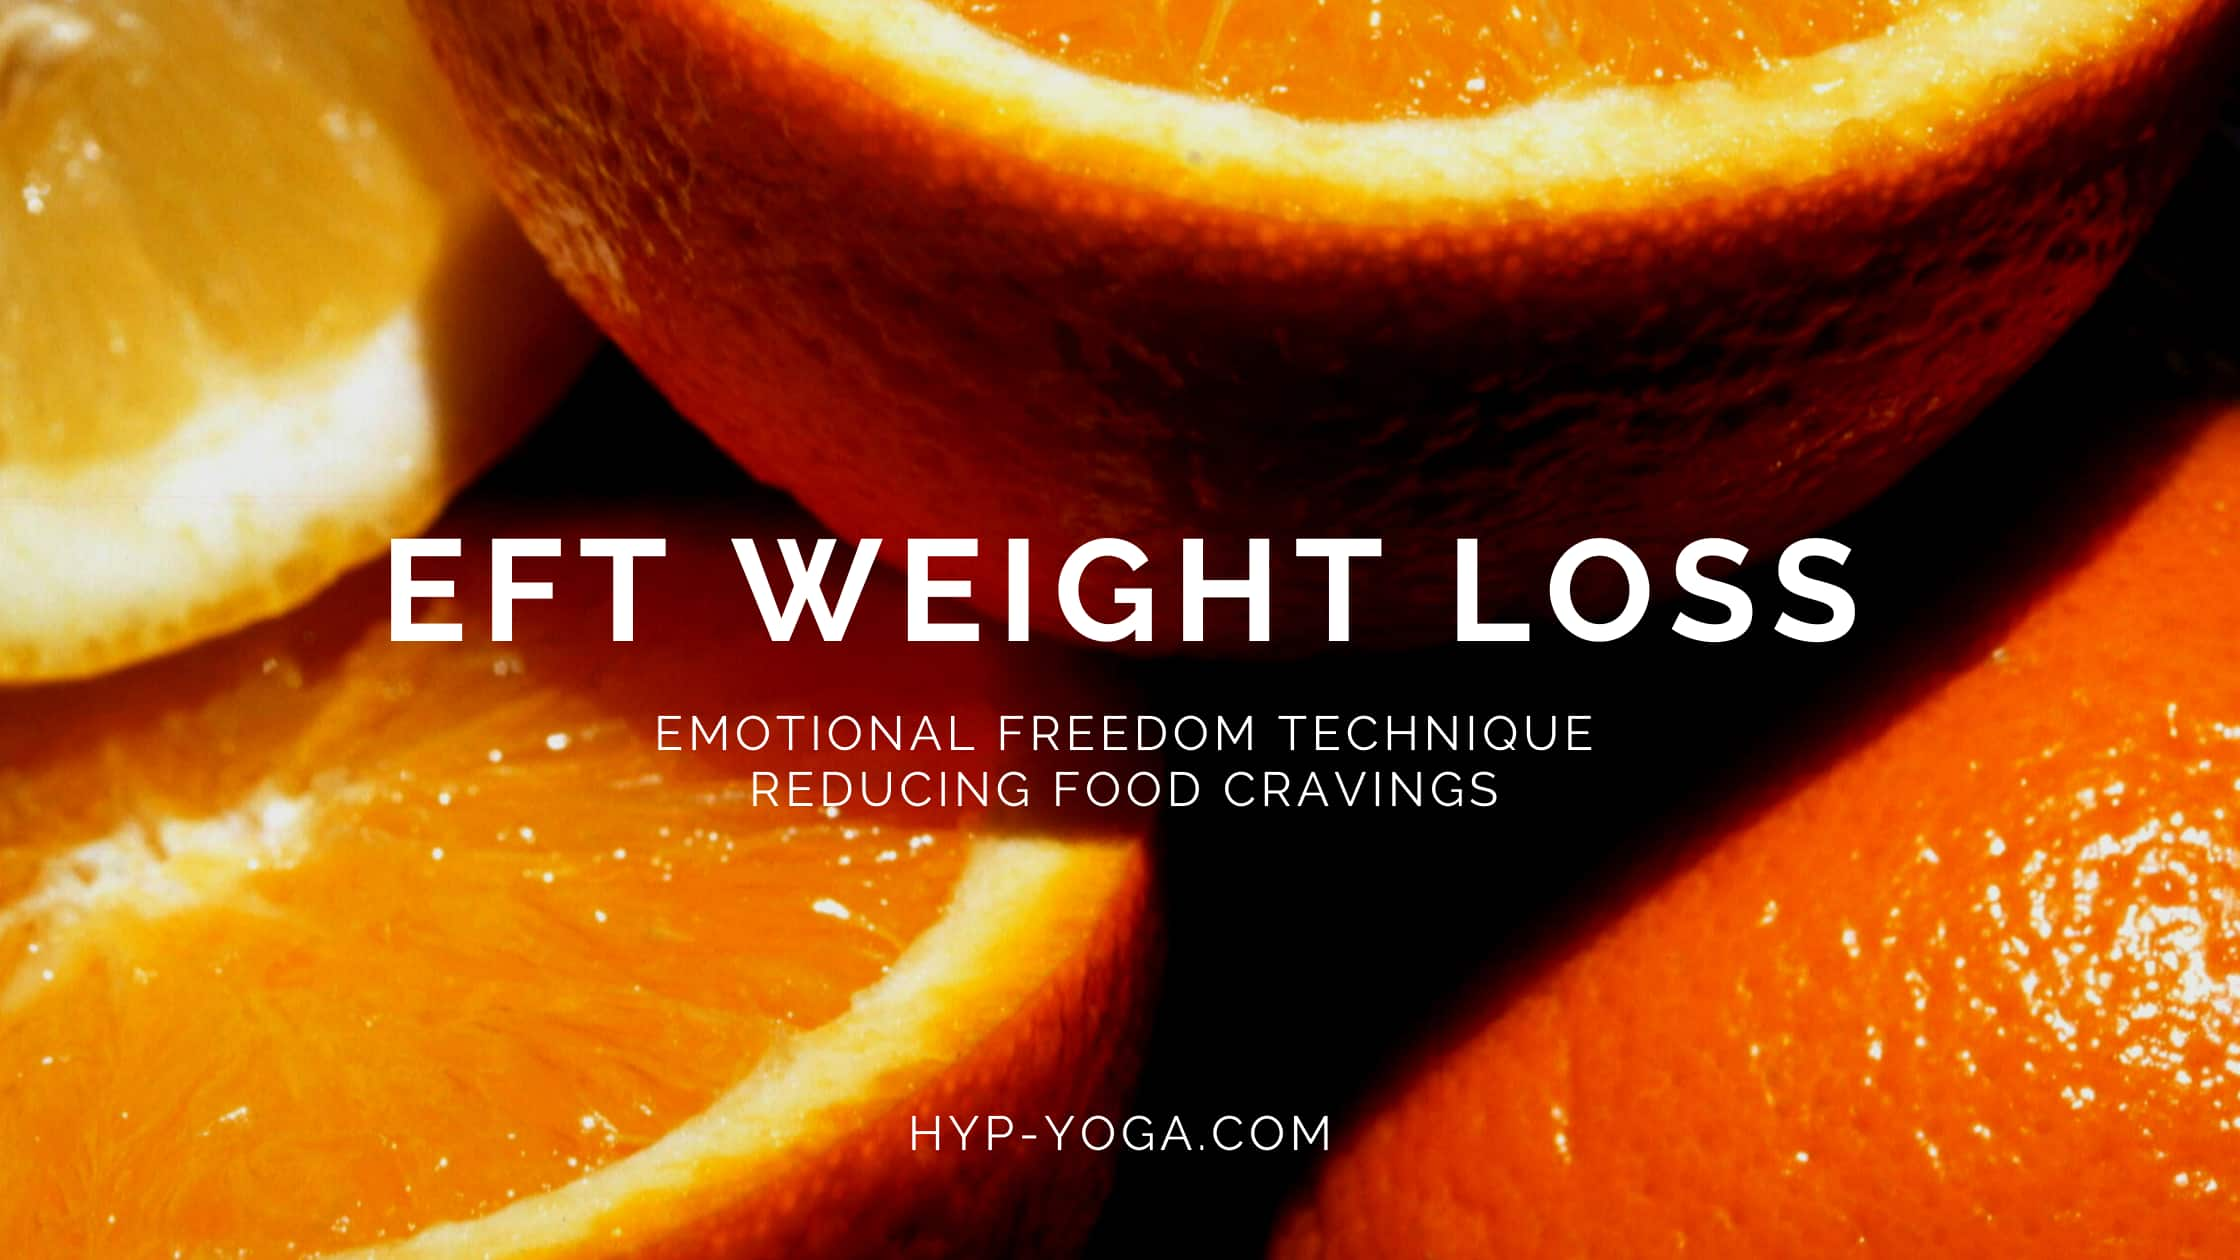 EFT Weight Loss Emotional Freedom Technique for reducing food cravings